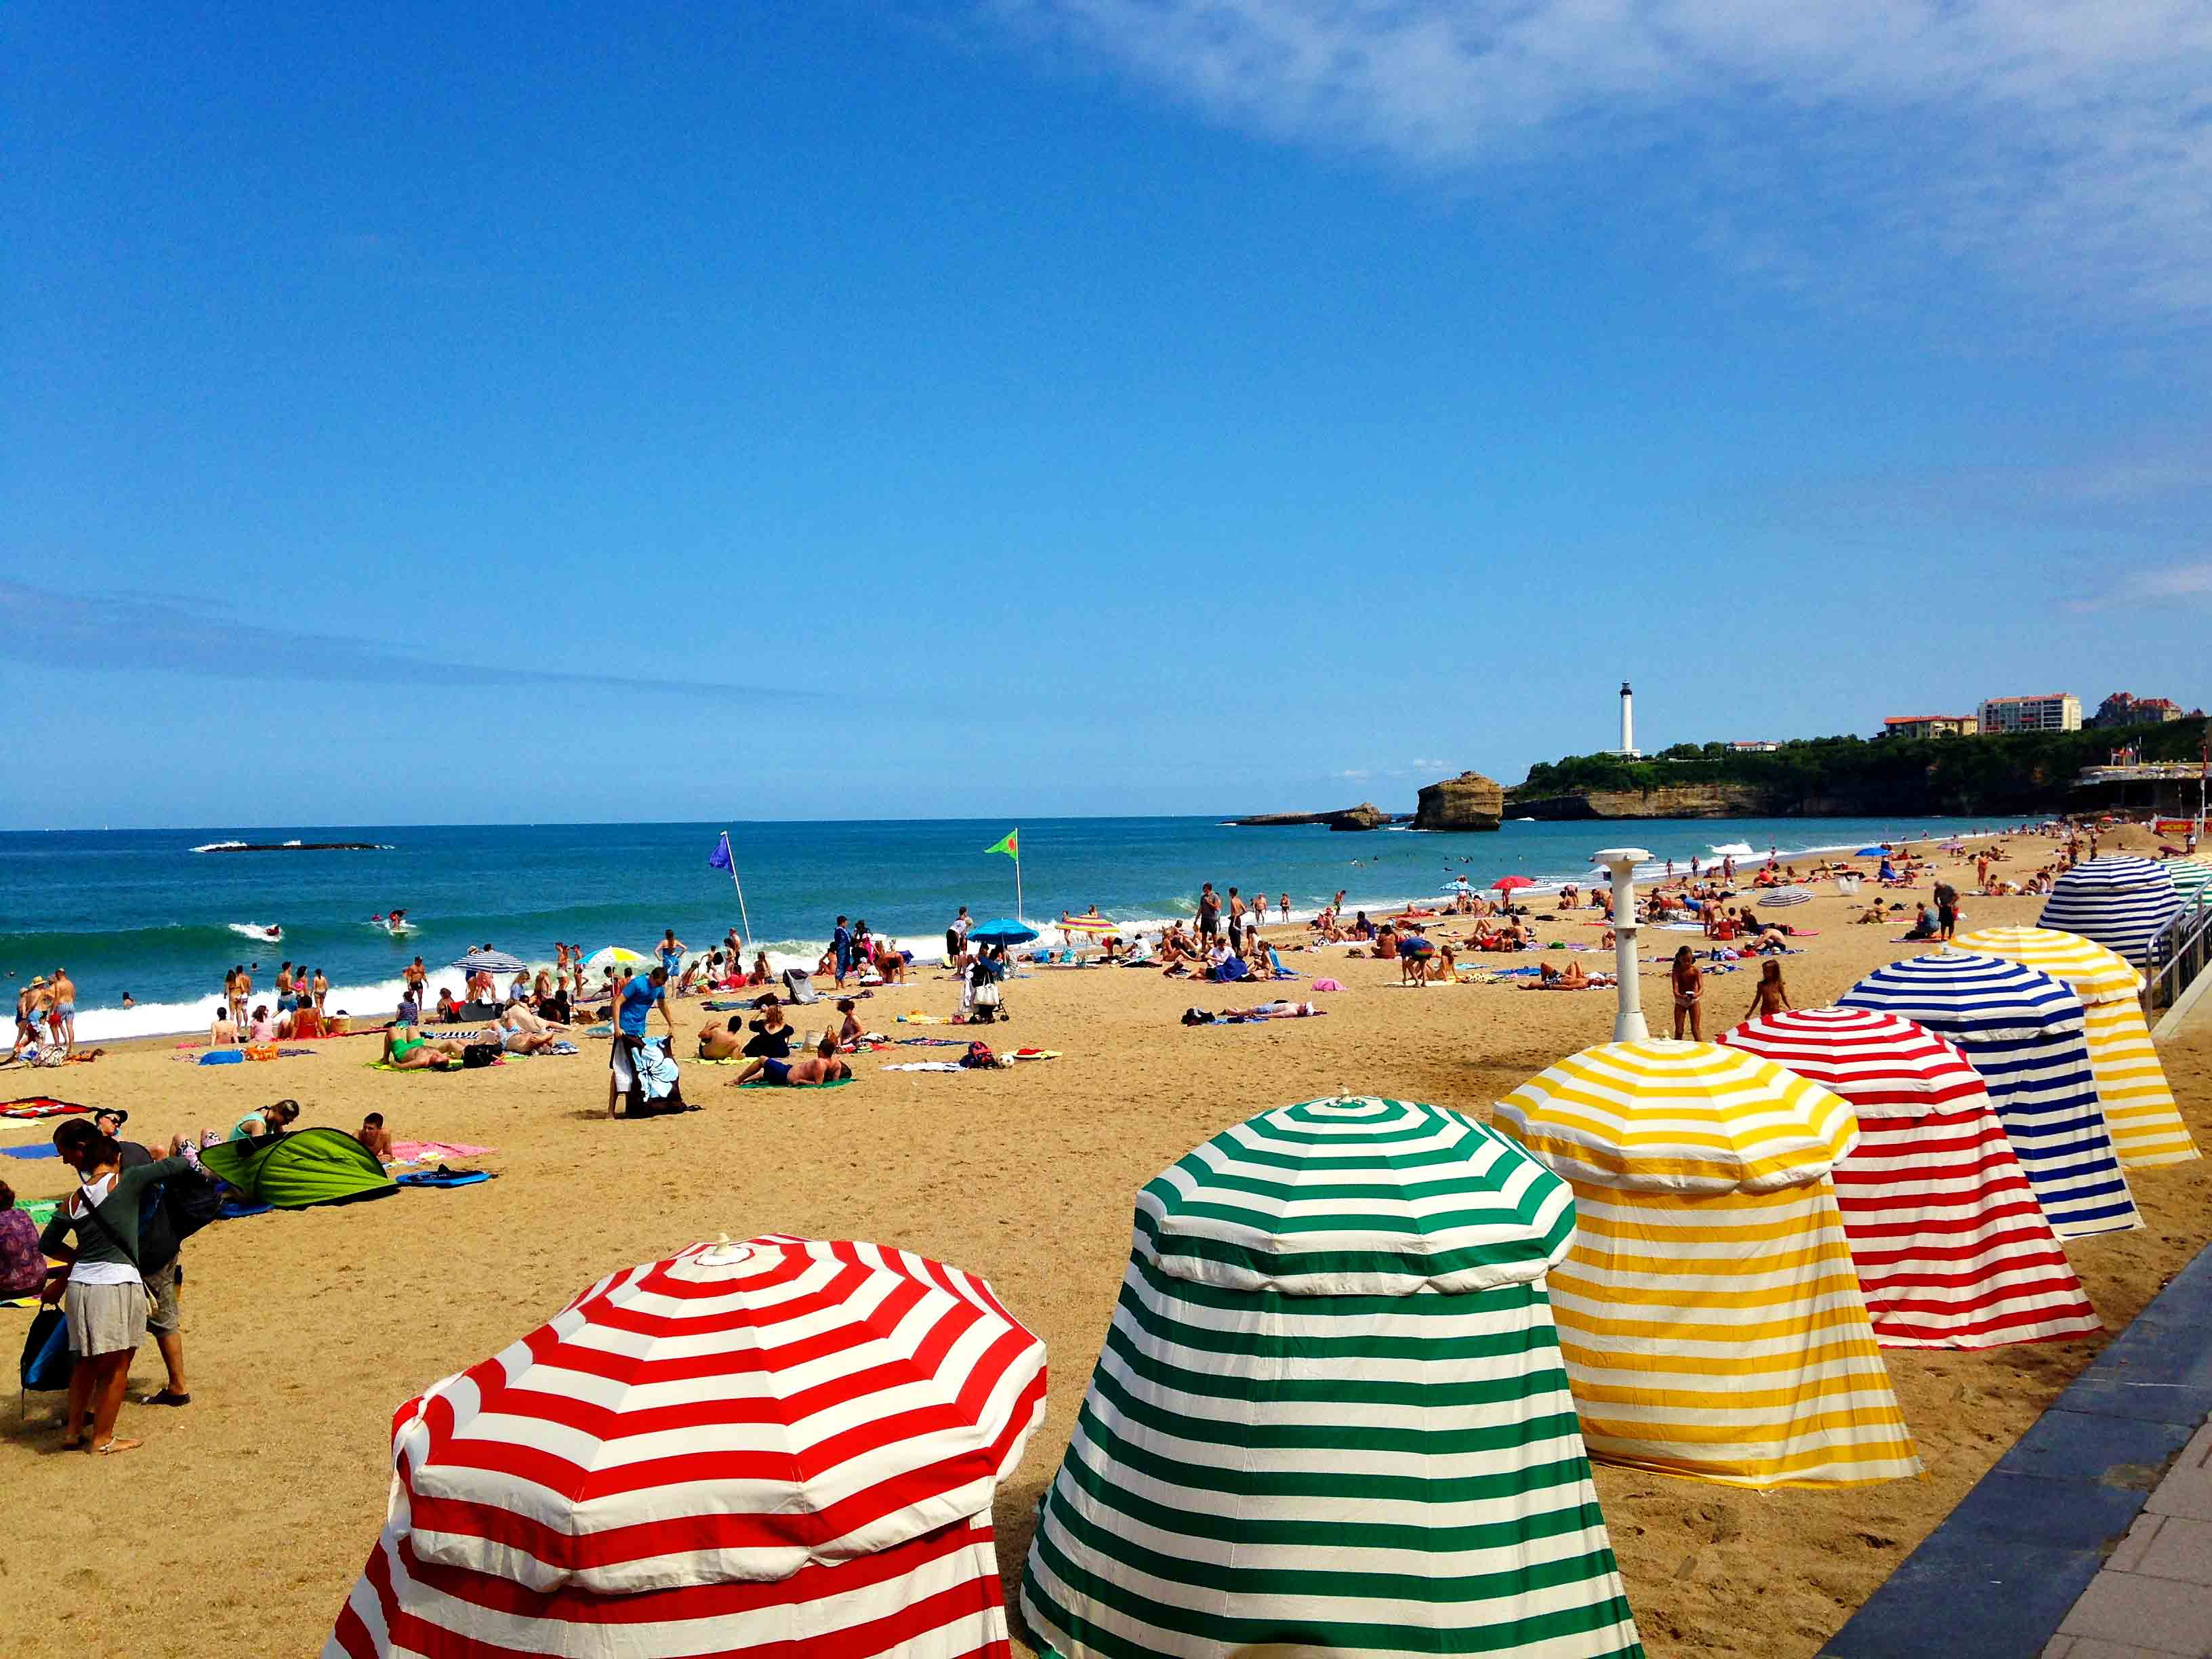 biarritz plage beach view france